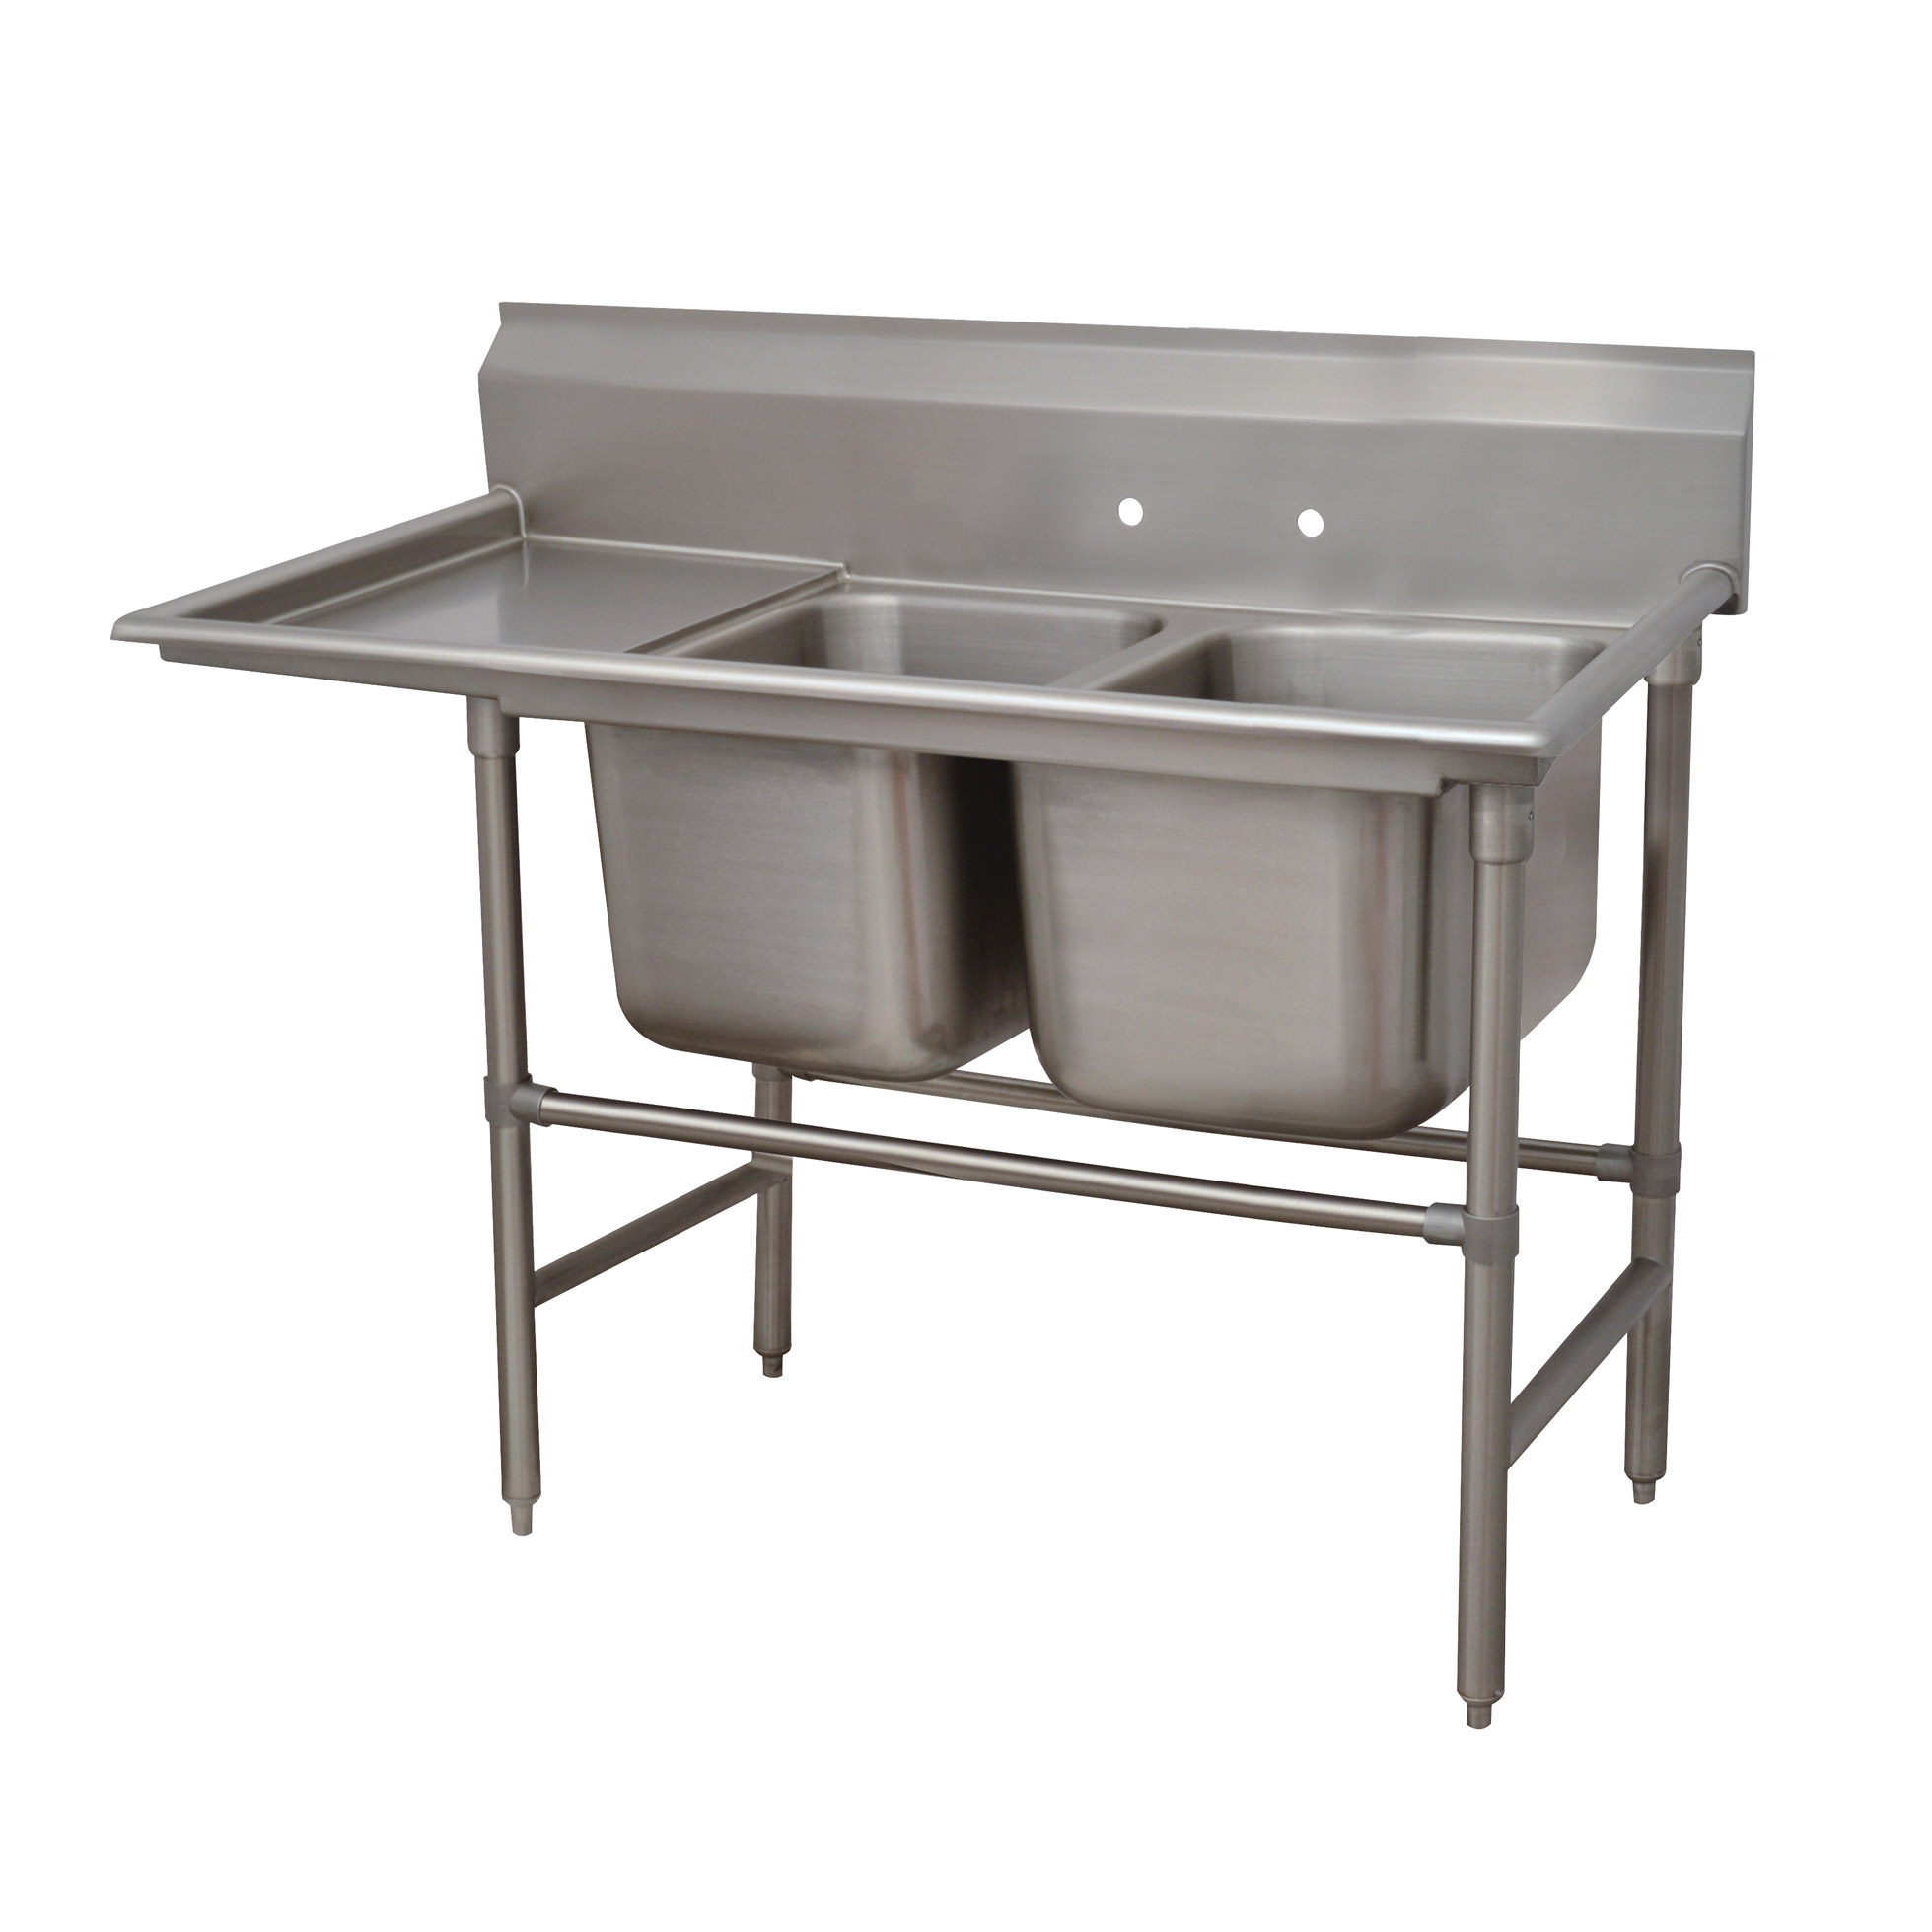 Advance Tabco 94-2-36-24L sink, (2) two compartment